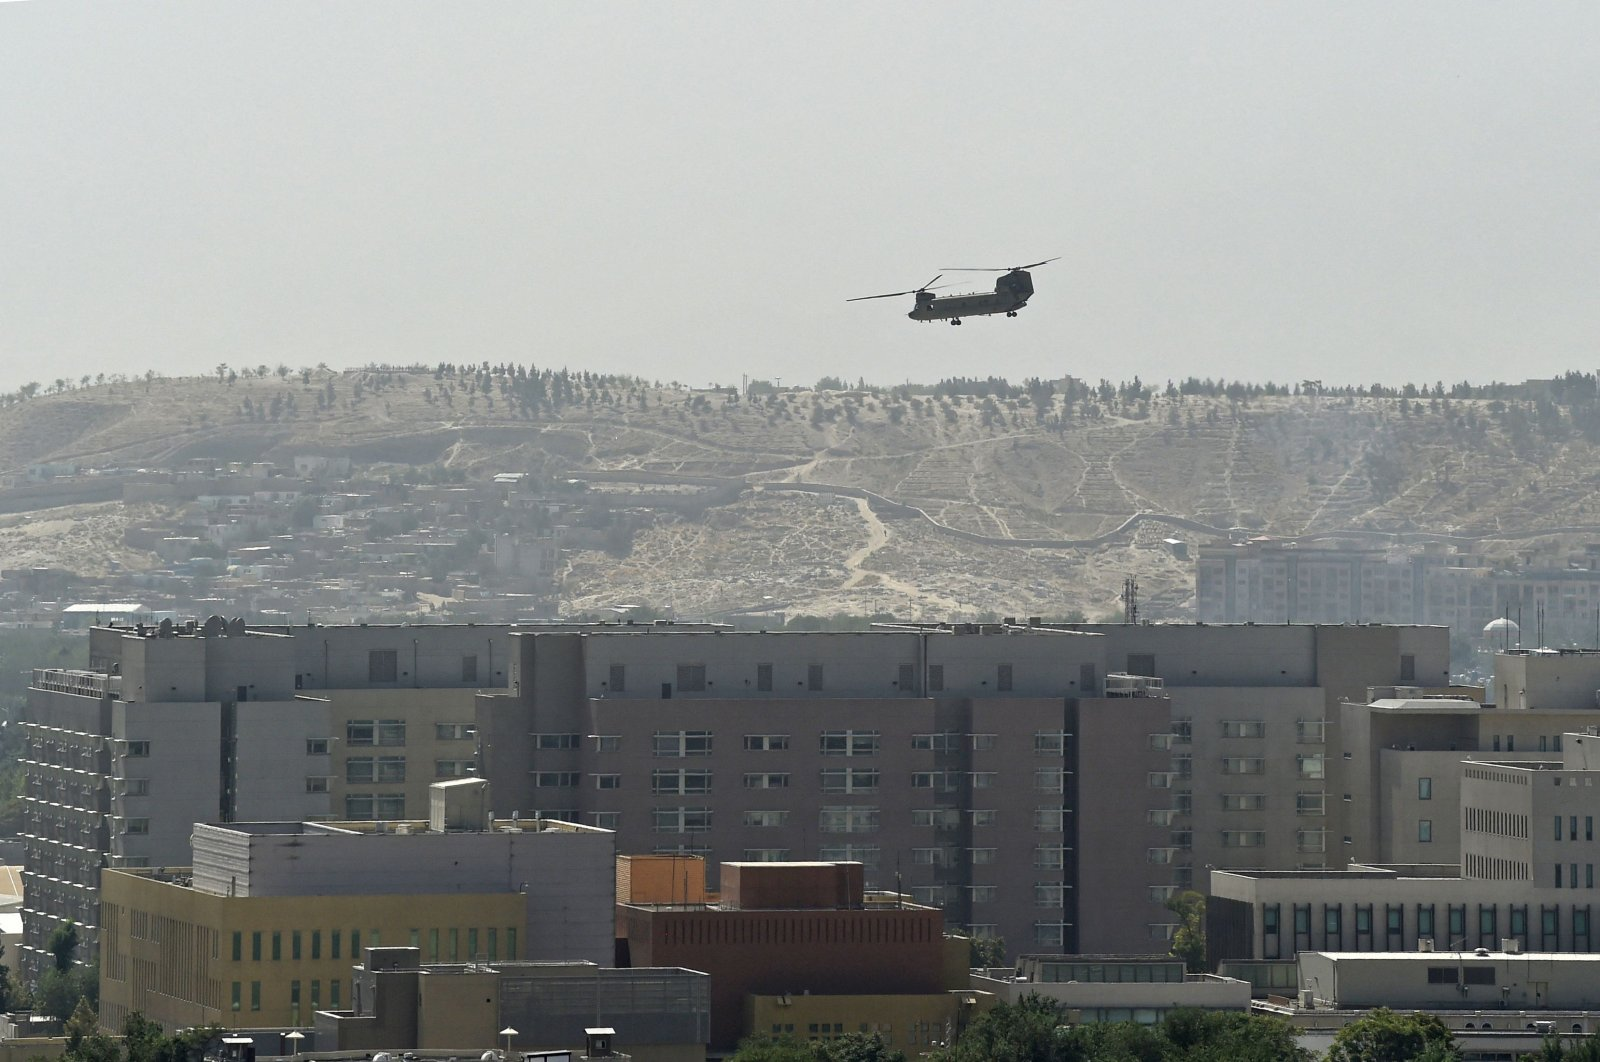 A U.S. military helicopter is pictured flying above of U.S. Embassy in Kabul, Afghanistan, on Aug. 15, 2021. (AFP Photo)